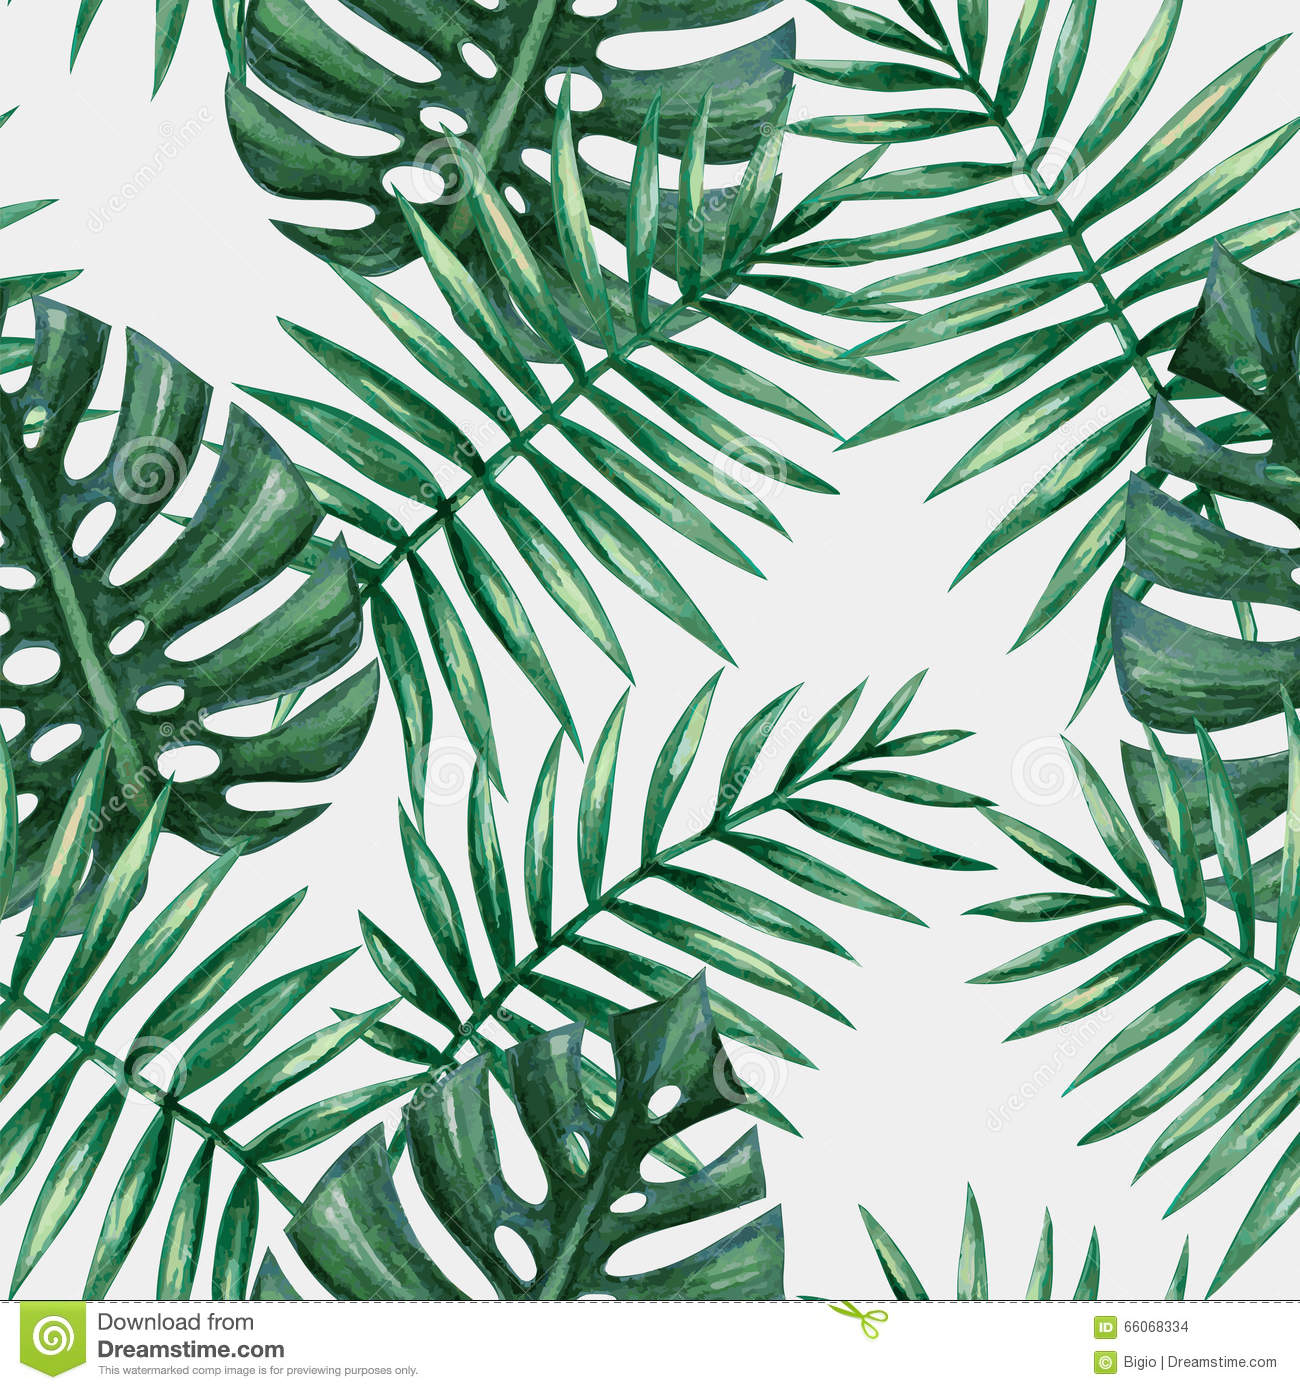 Watercolor Tropical Palm Leaves Seamless Pattern. Stock Vector - Image ...